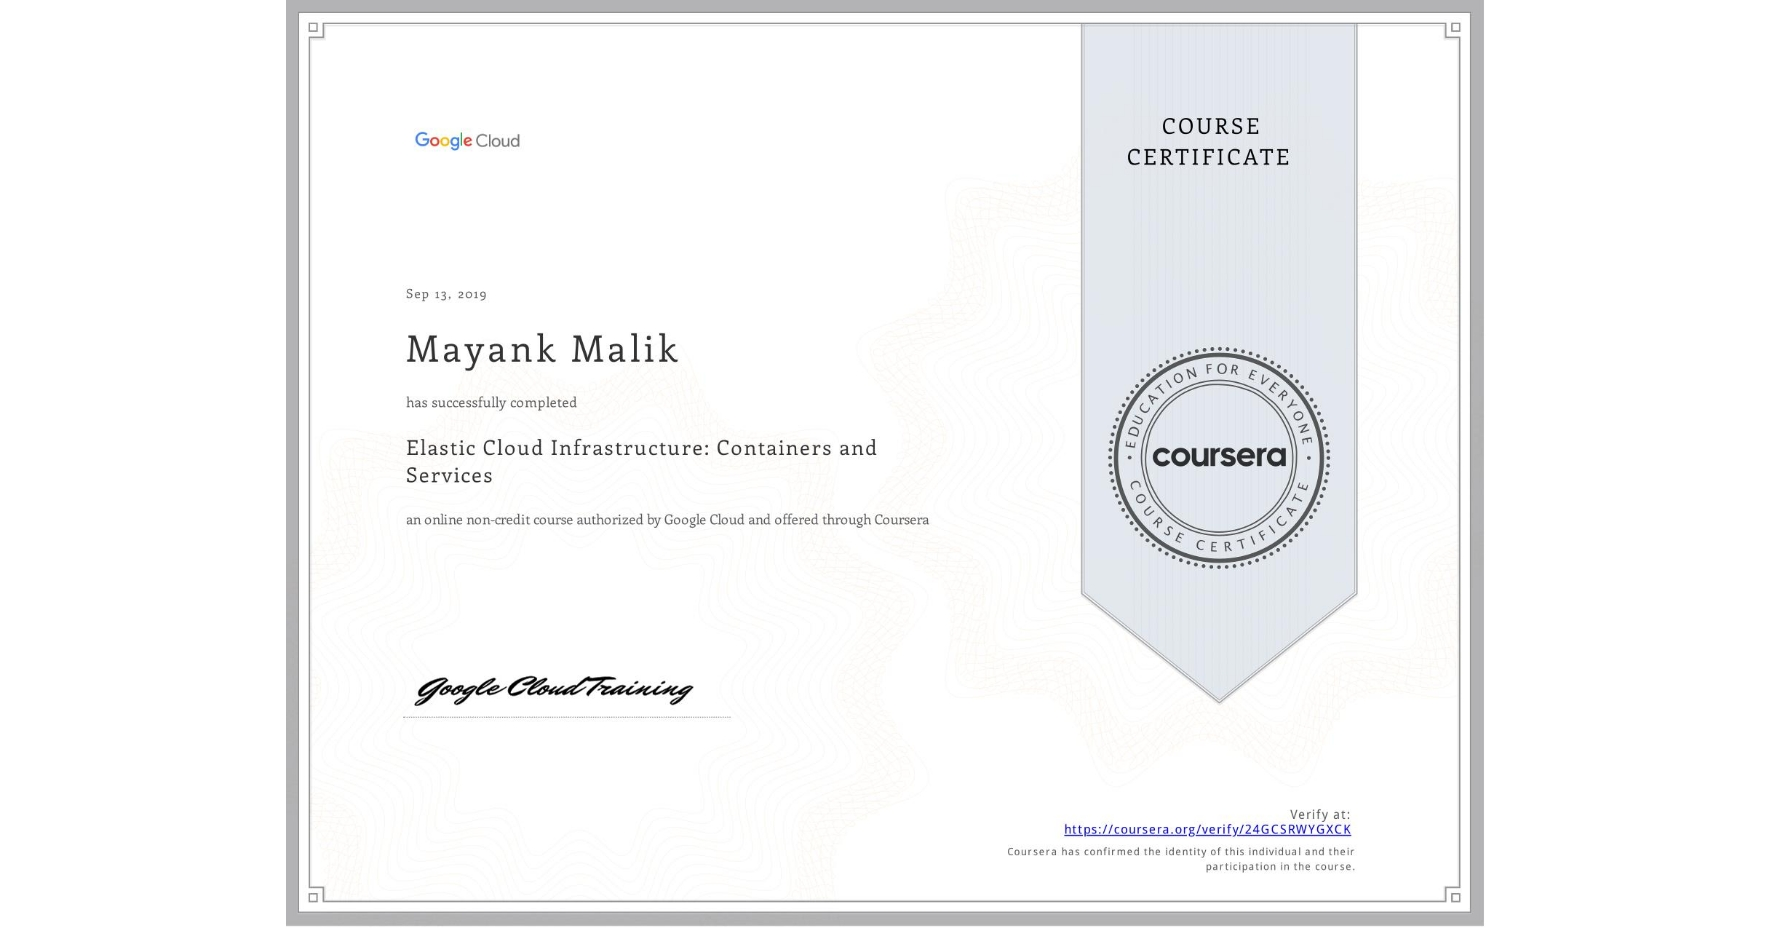 View certificate for Mayank Malik, Elastic Cloud Infrastructure: Containers and Services, an online non-credit course authorized by Google Cloud and offered through Coursera